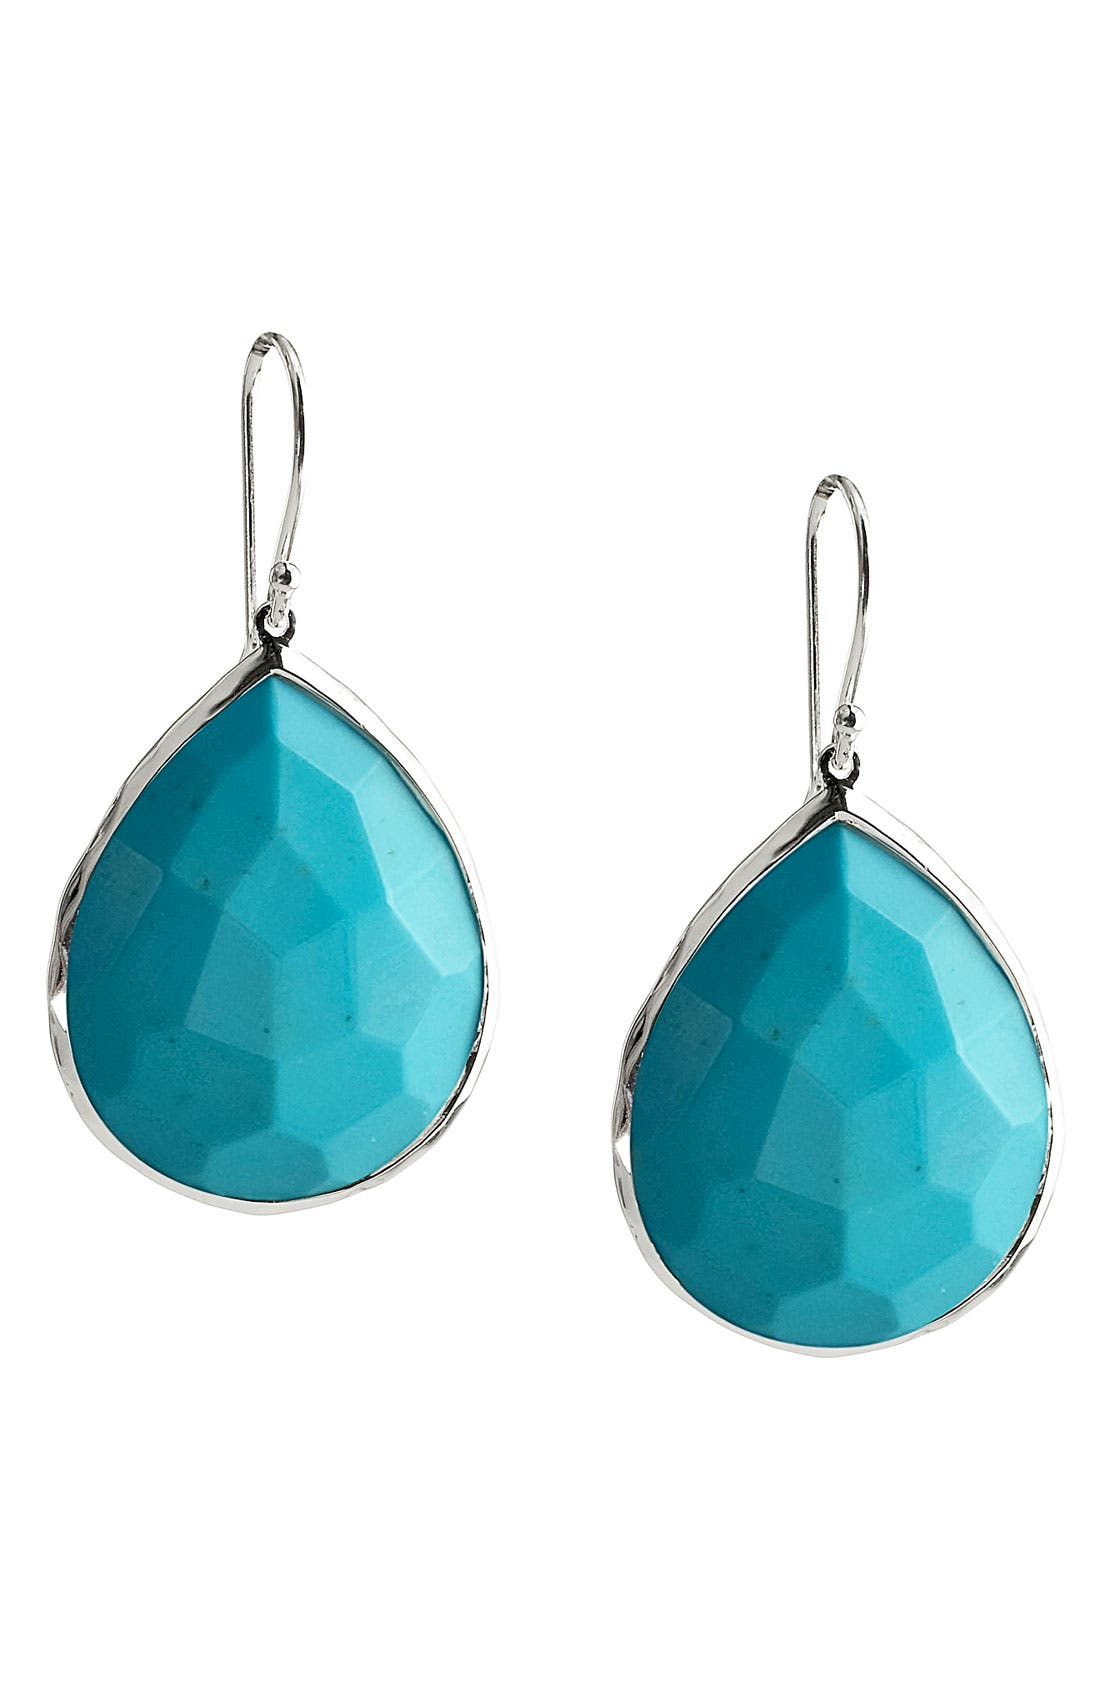 Main Image - Ippolita 'Rock Candy' Semiprecious Teardrop Earrings